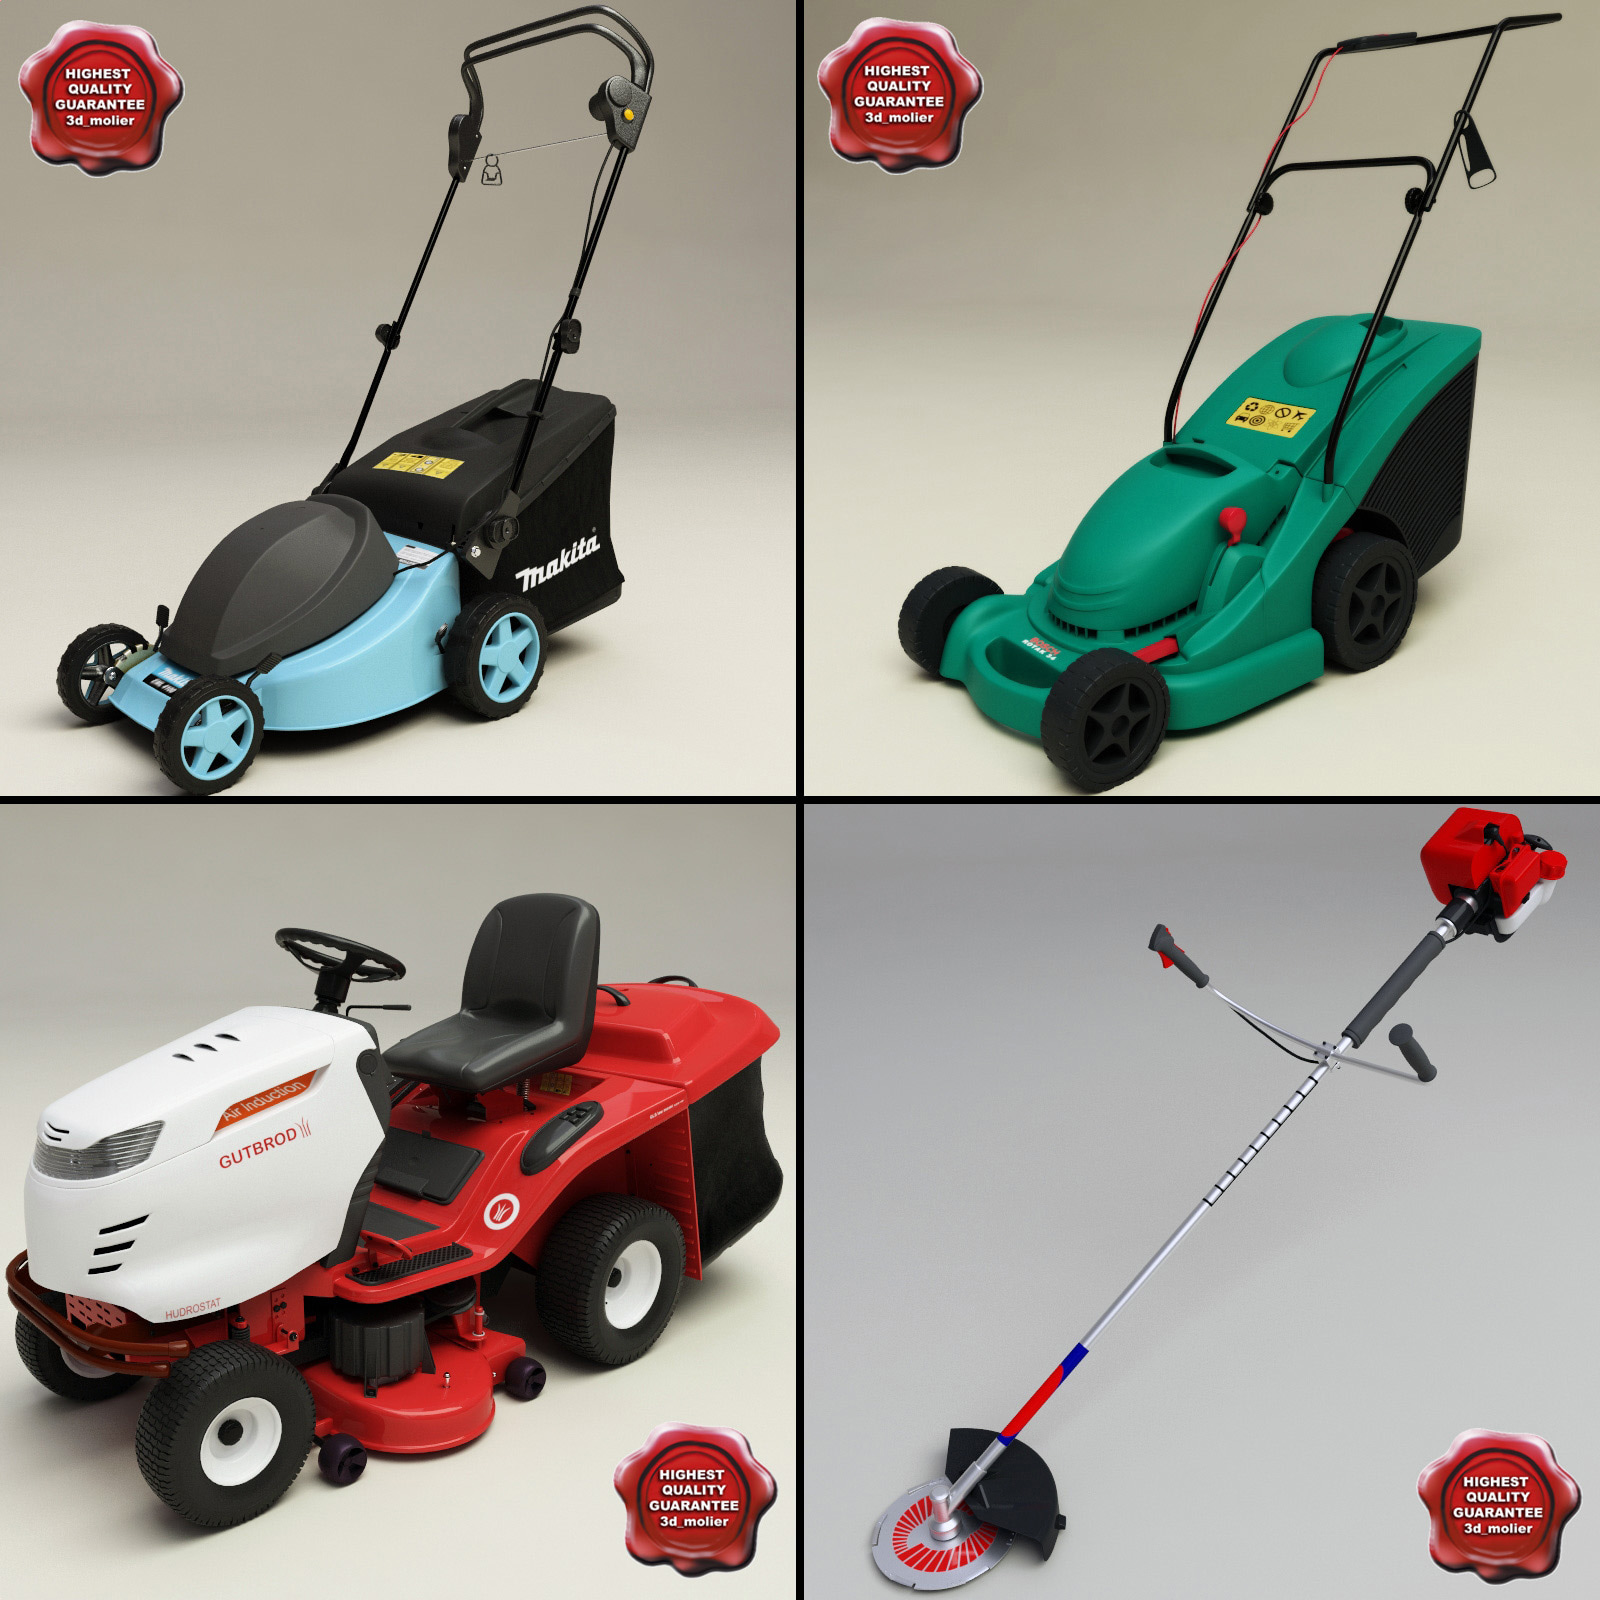 Lawn_mowers_collection_00.jpg